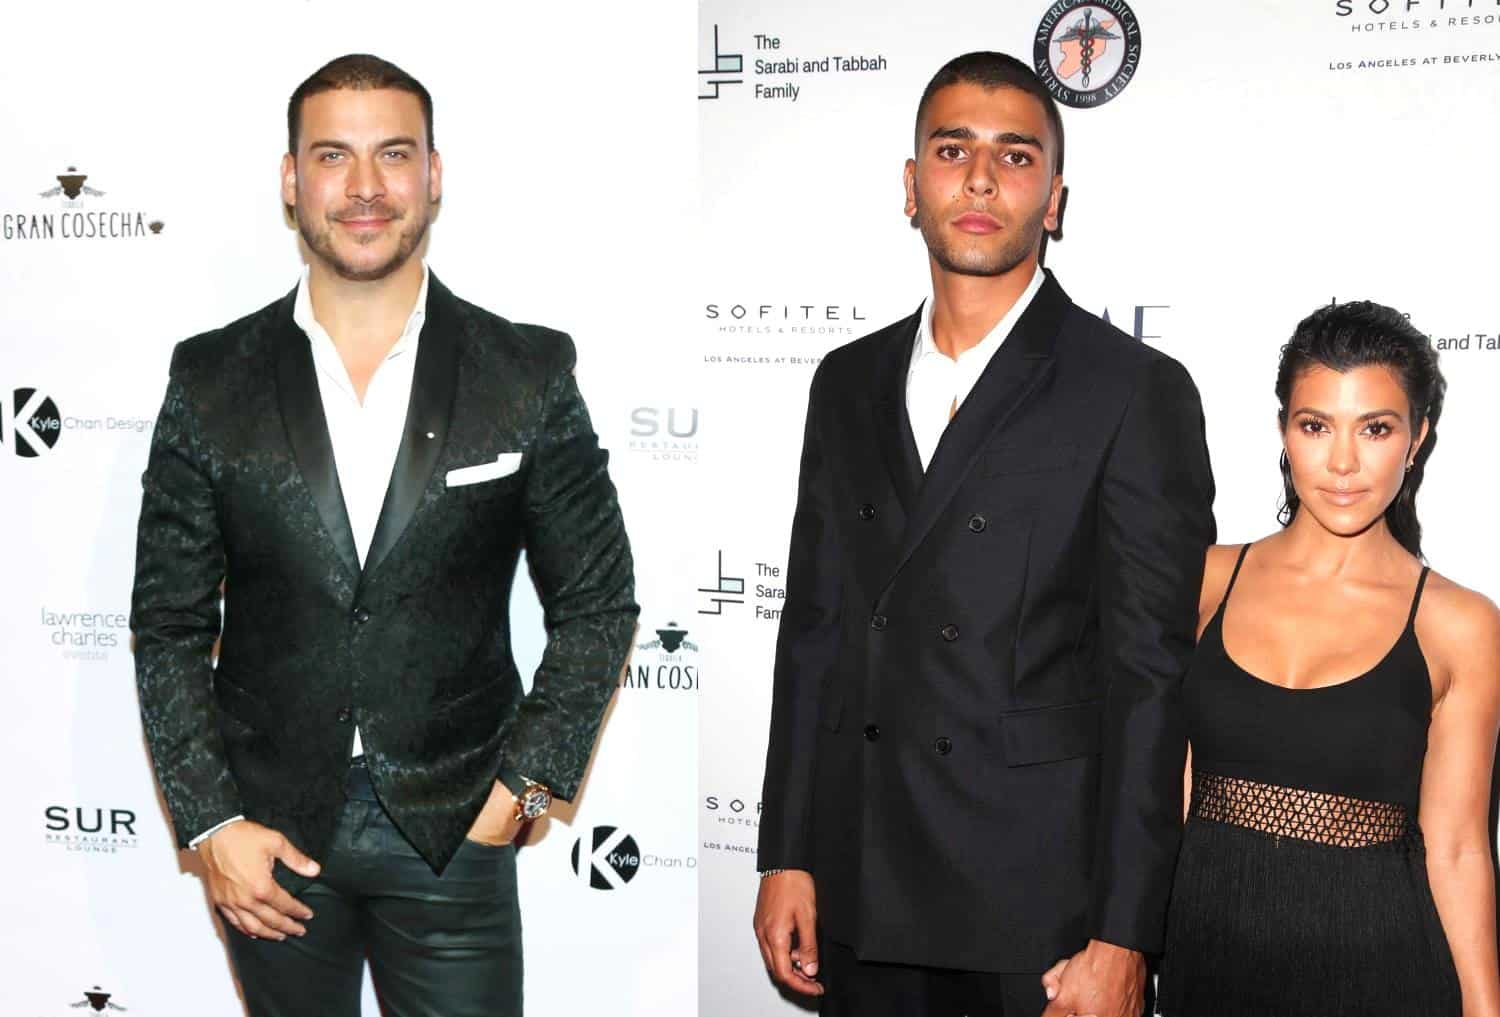 Jax Taylor vs Younes Bendjima and Kourtney Kardashian